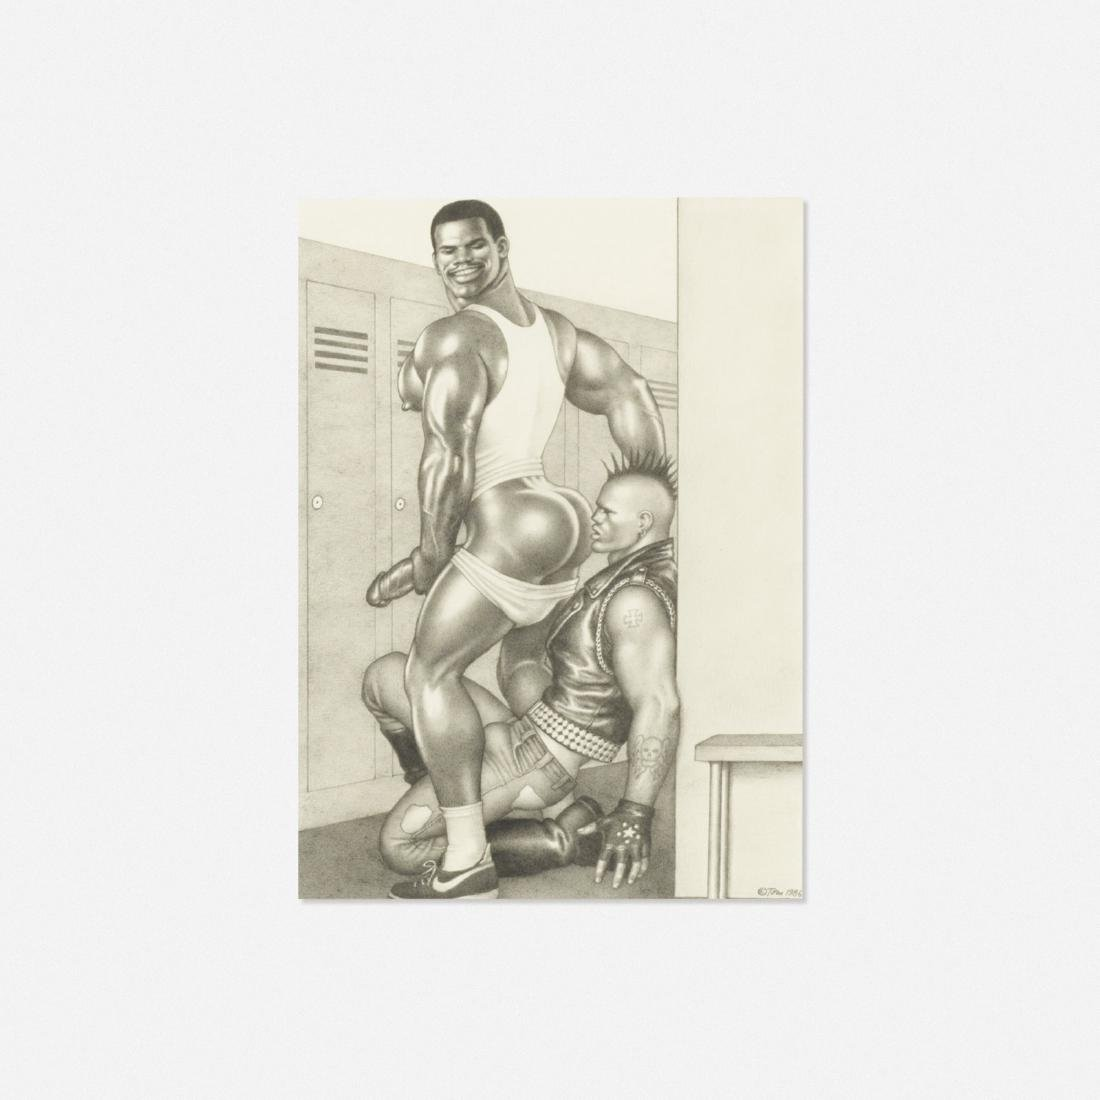 Tom of Finland, Untitled